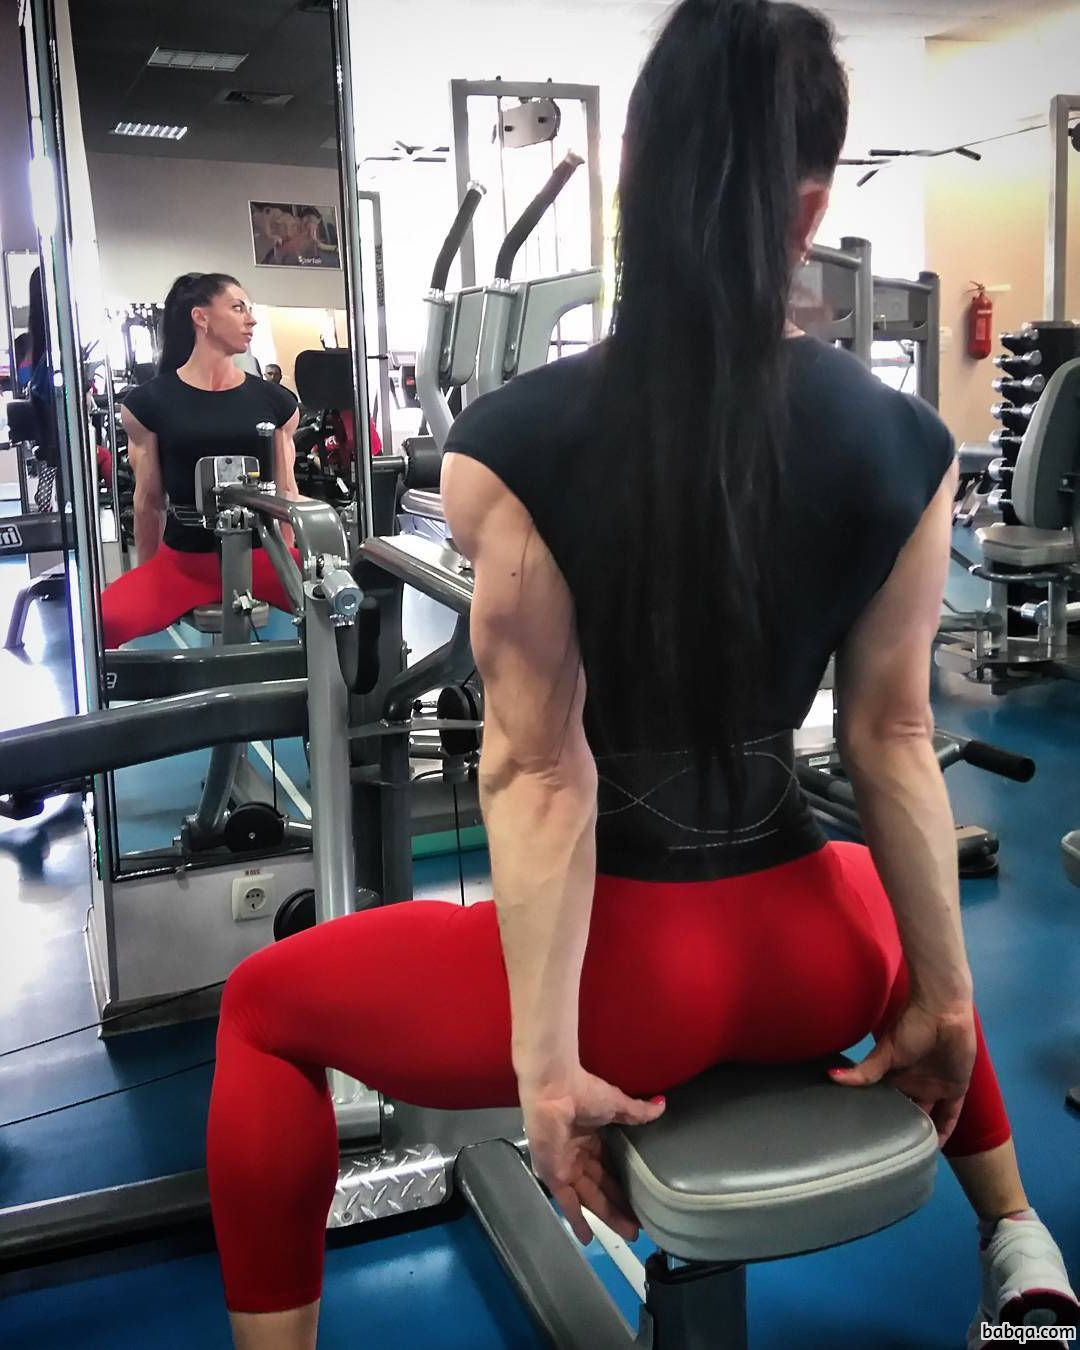 hottest female bodybuilder with strong body and muscle biceps image from insta